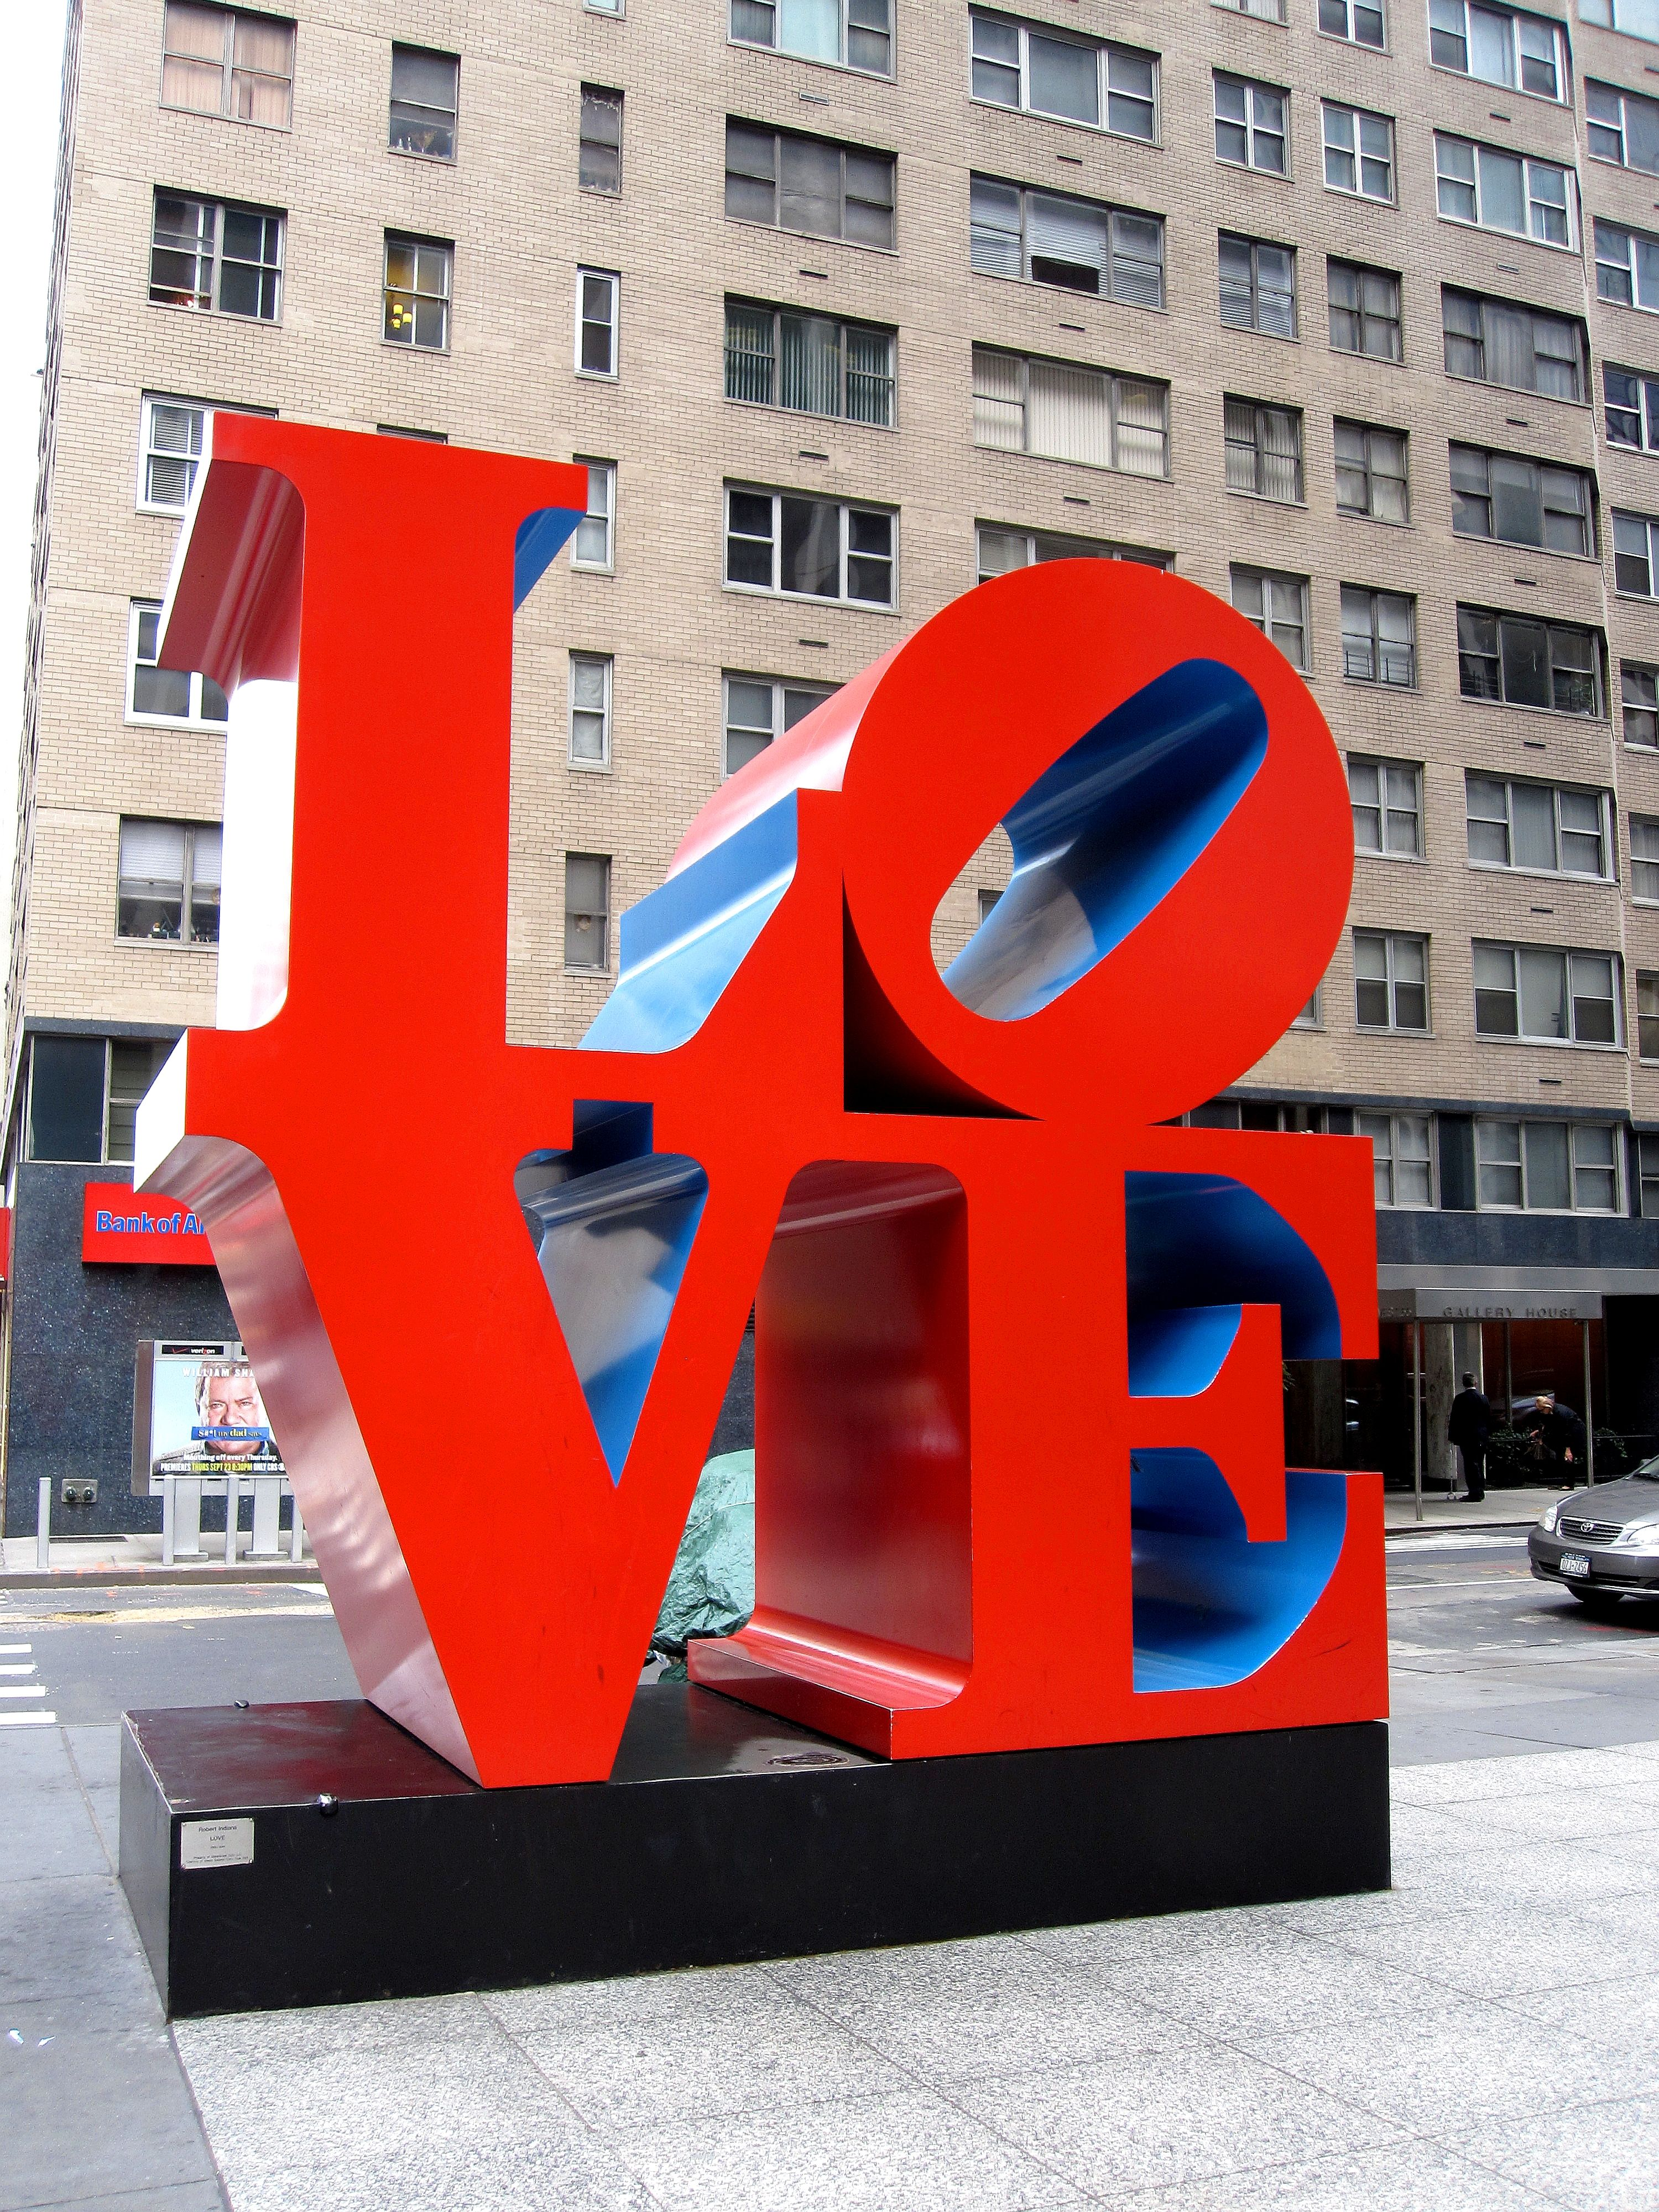 Pop Art Icon Robert Indiana's LOVE modern art sculpture on